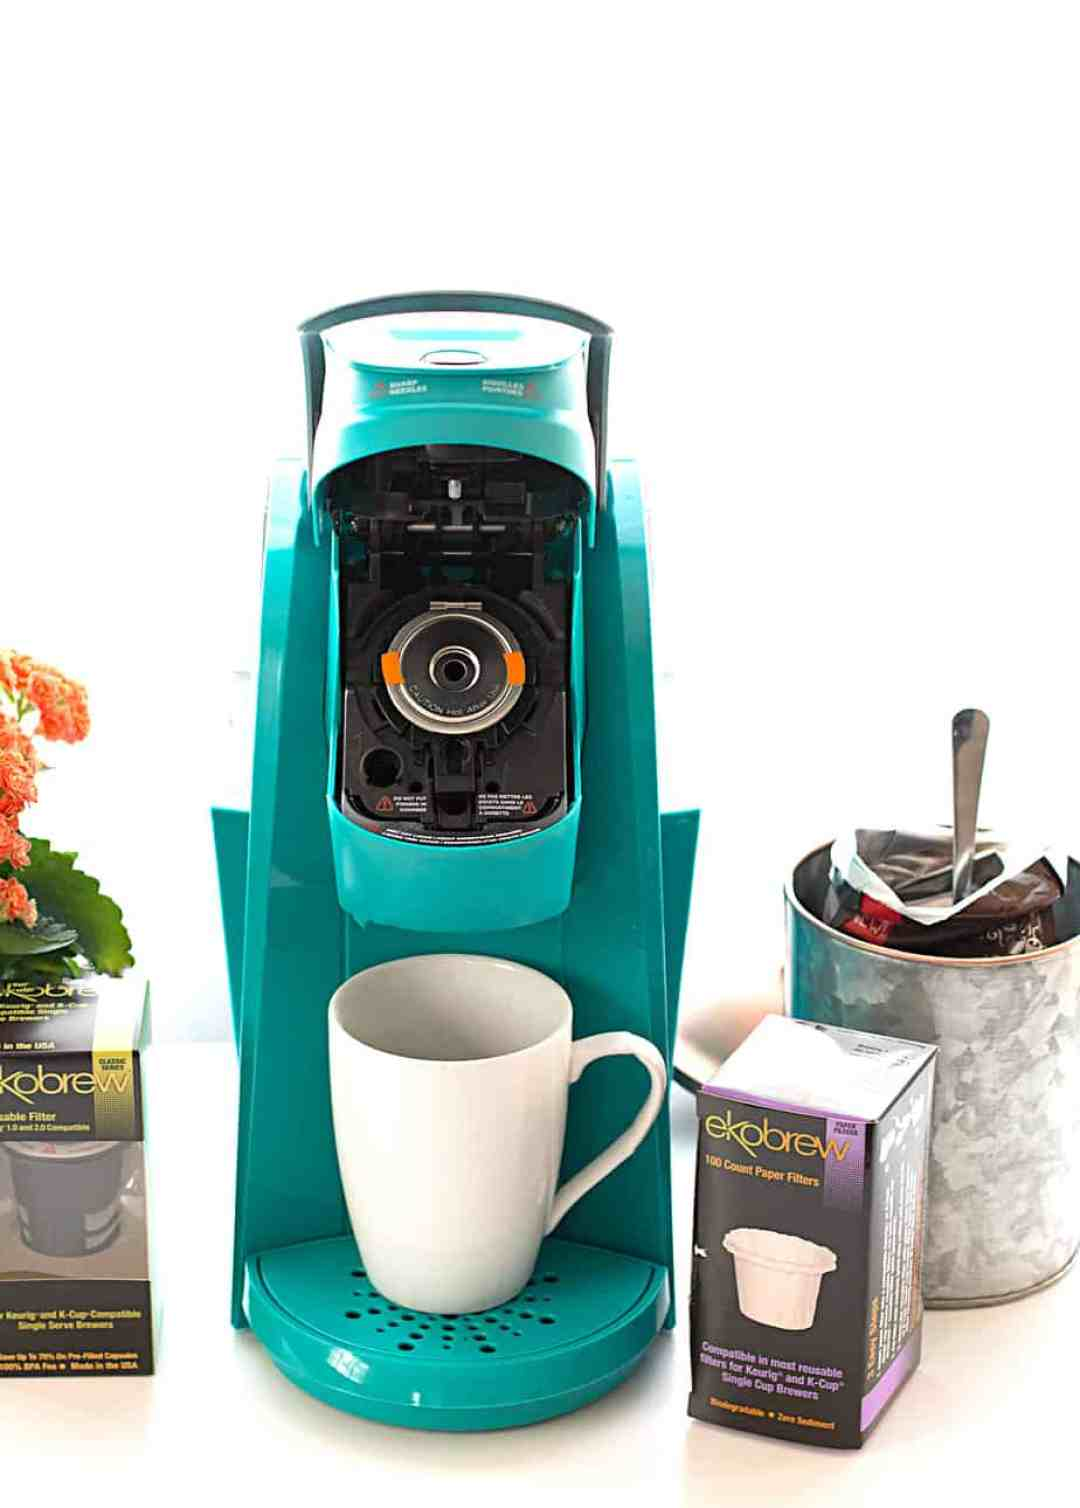 morning routines with ekobrew and keurig